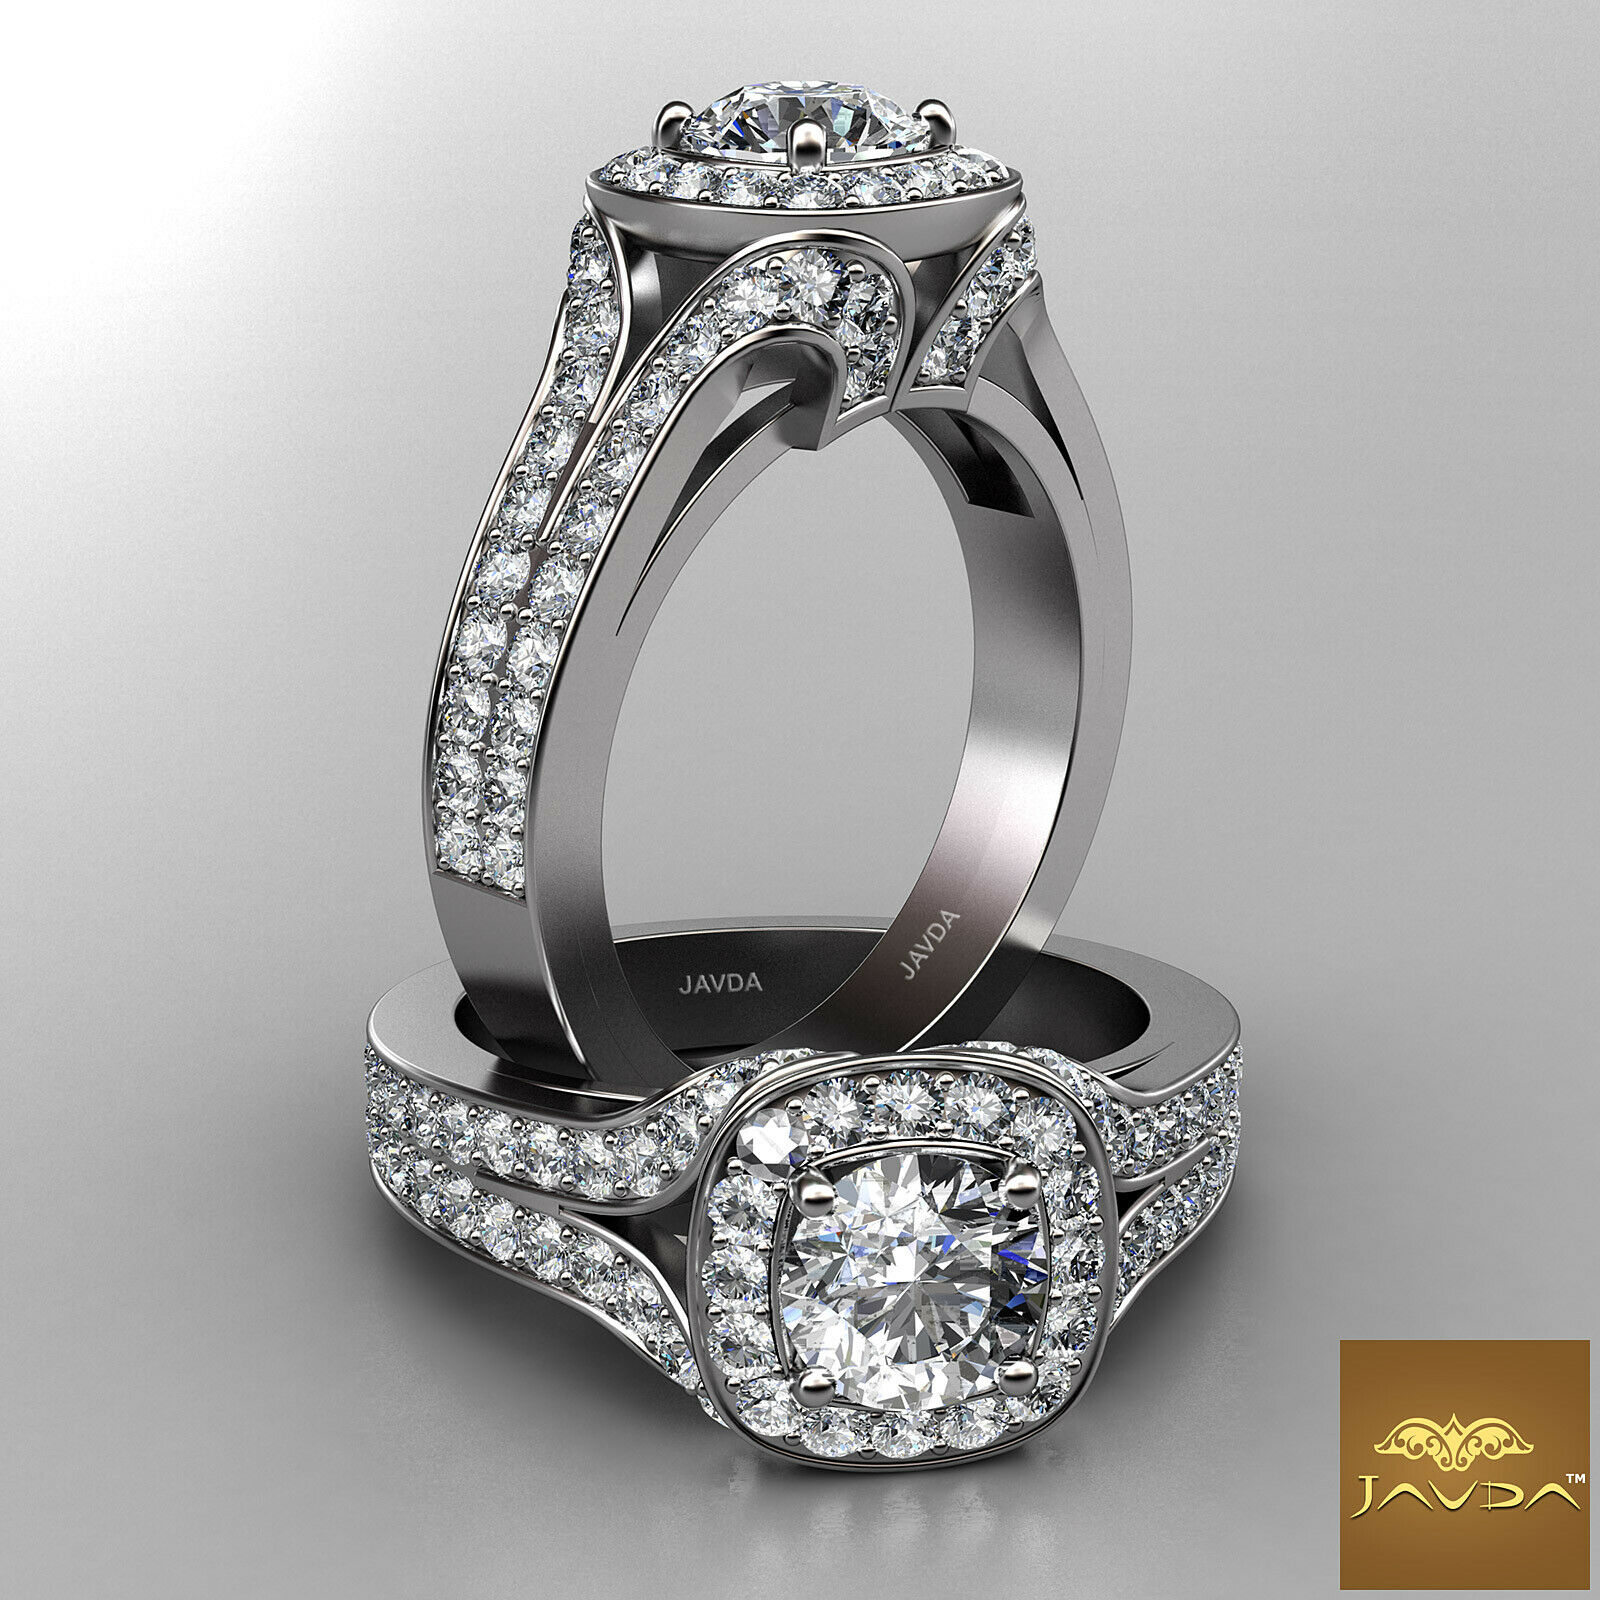 2.2ctw Gala Halo Pave Round Diamond Engagement Ring GIA L-SI1 White Gold Rings